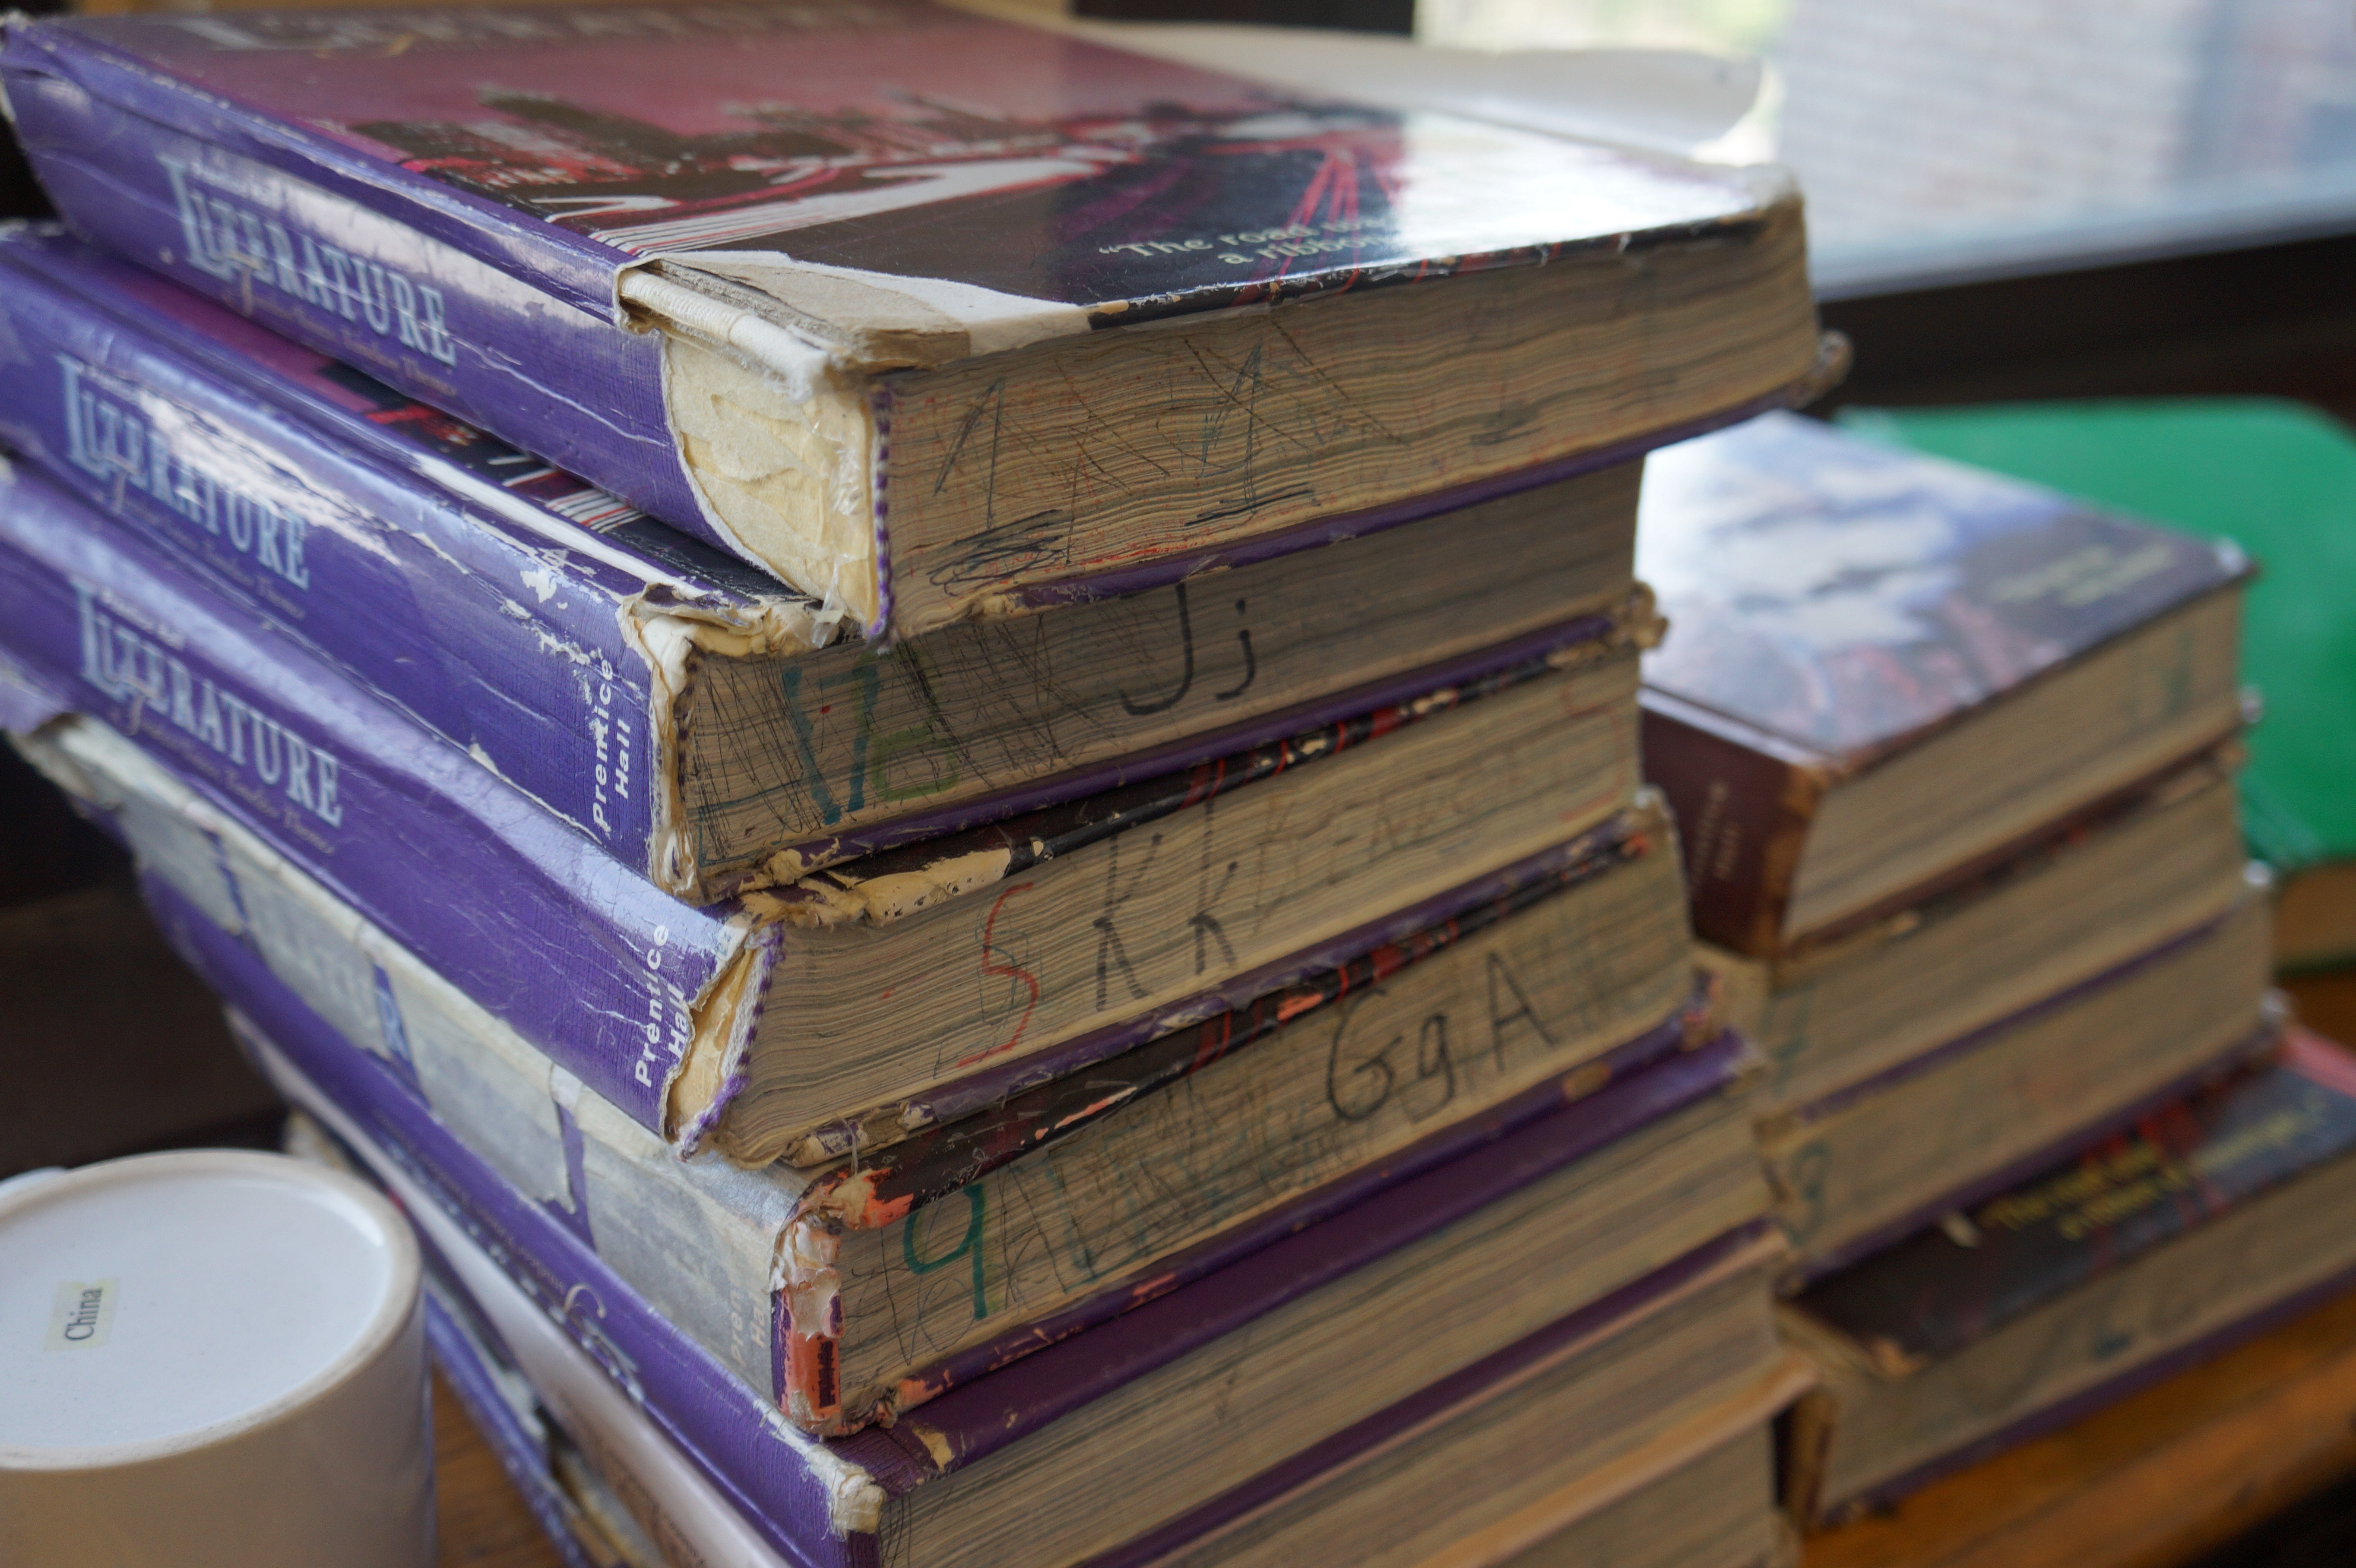 Outdated and battered textbooks that have rental dates from the year 2000 are still used at the school. (Kira Latoszewski, 14 East)